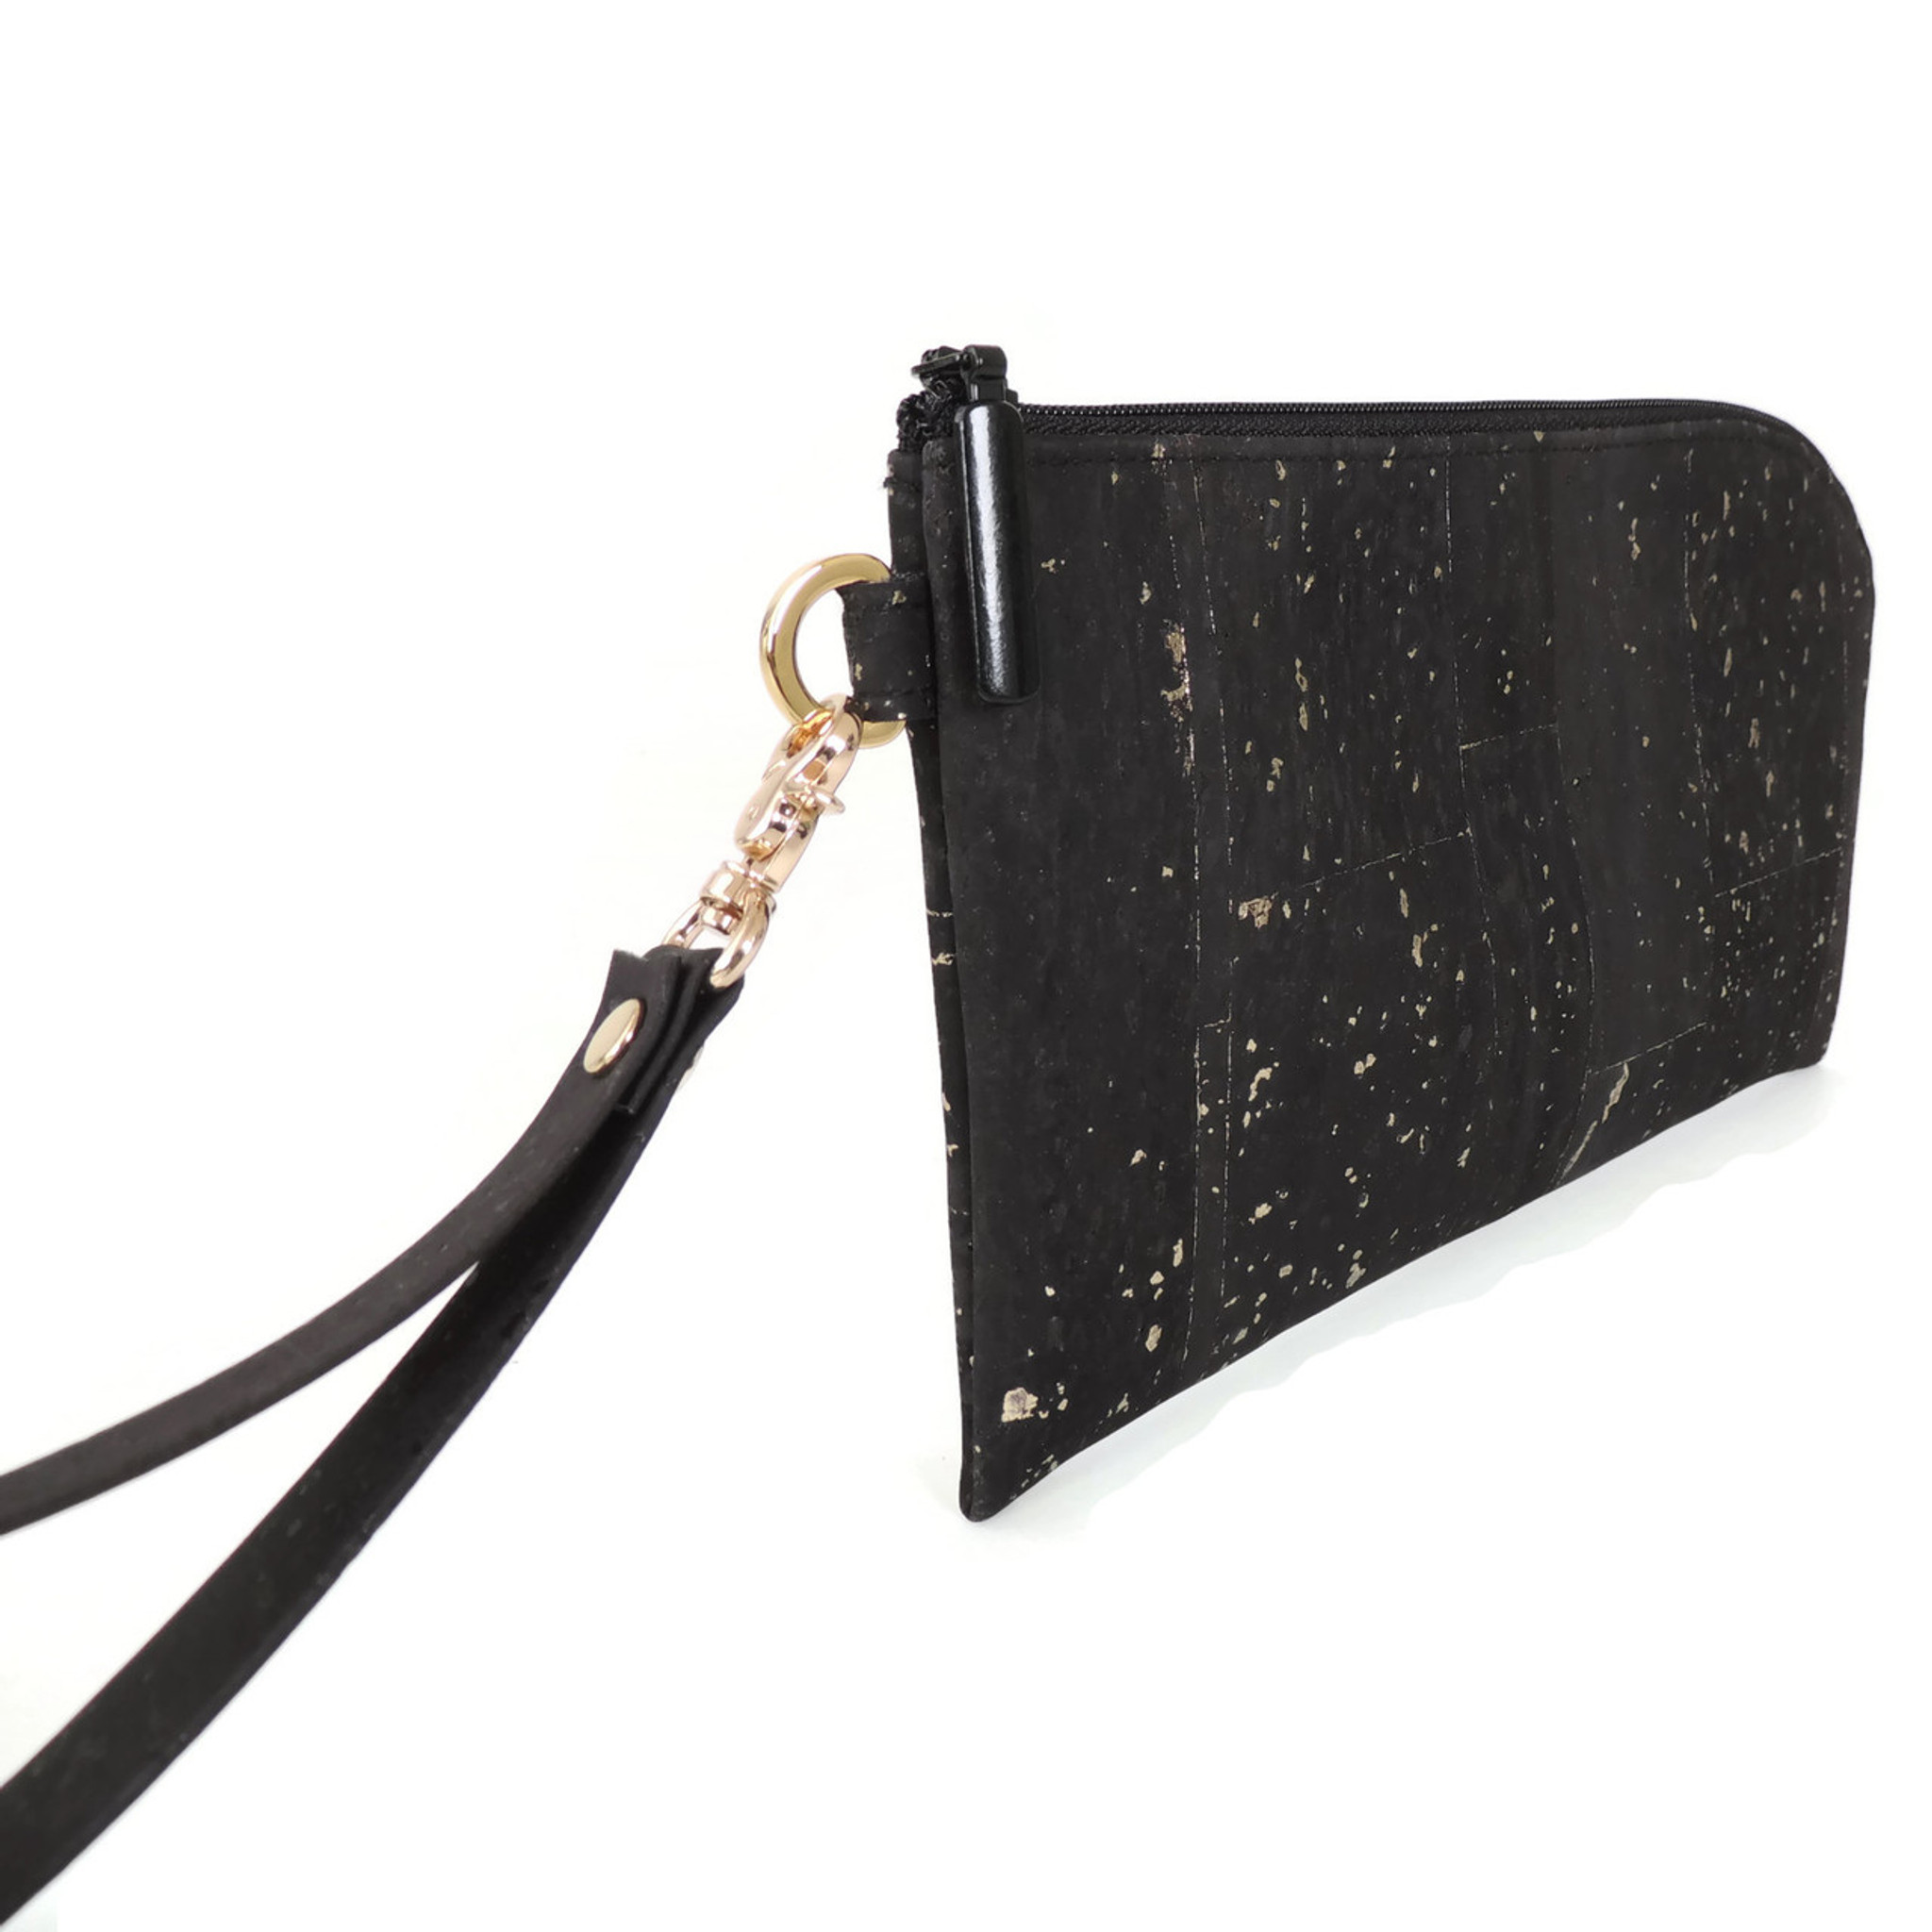 Phone Wristlet in Black and Gold Cork